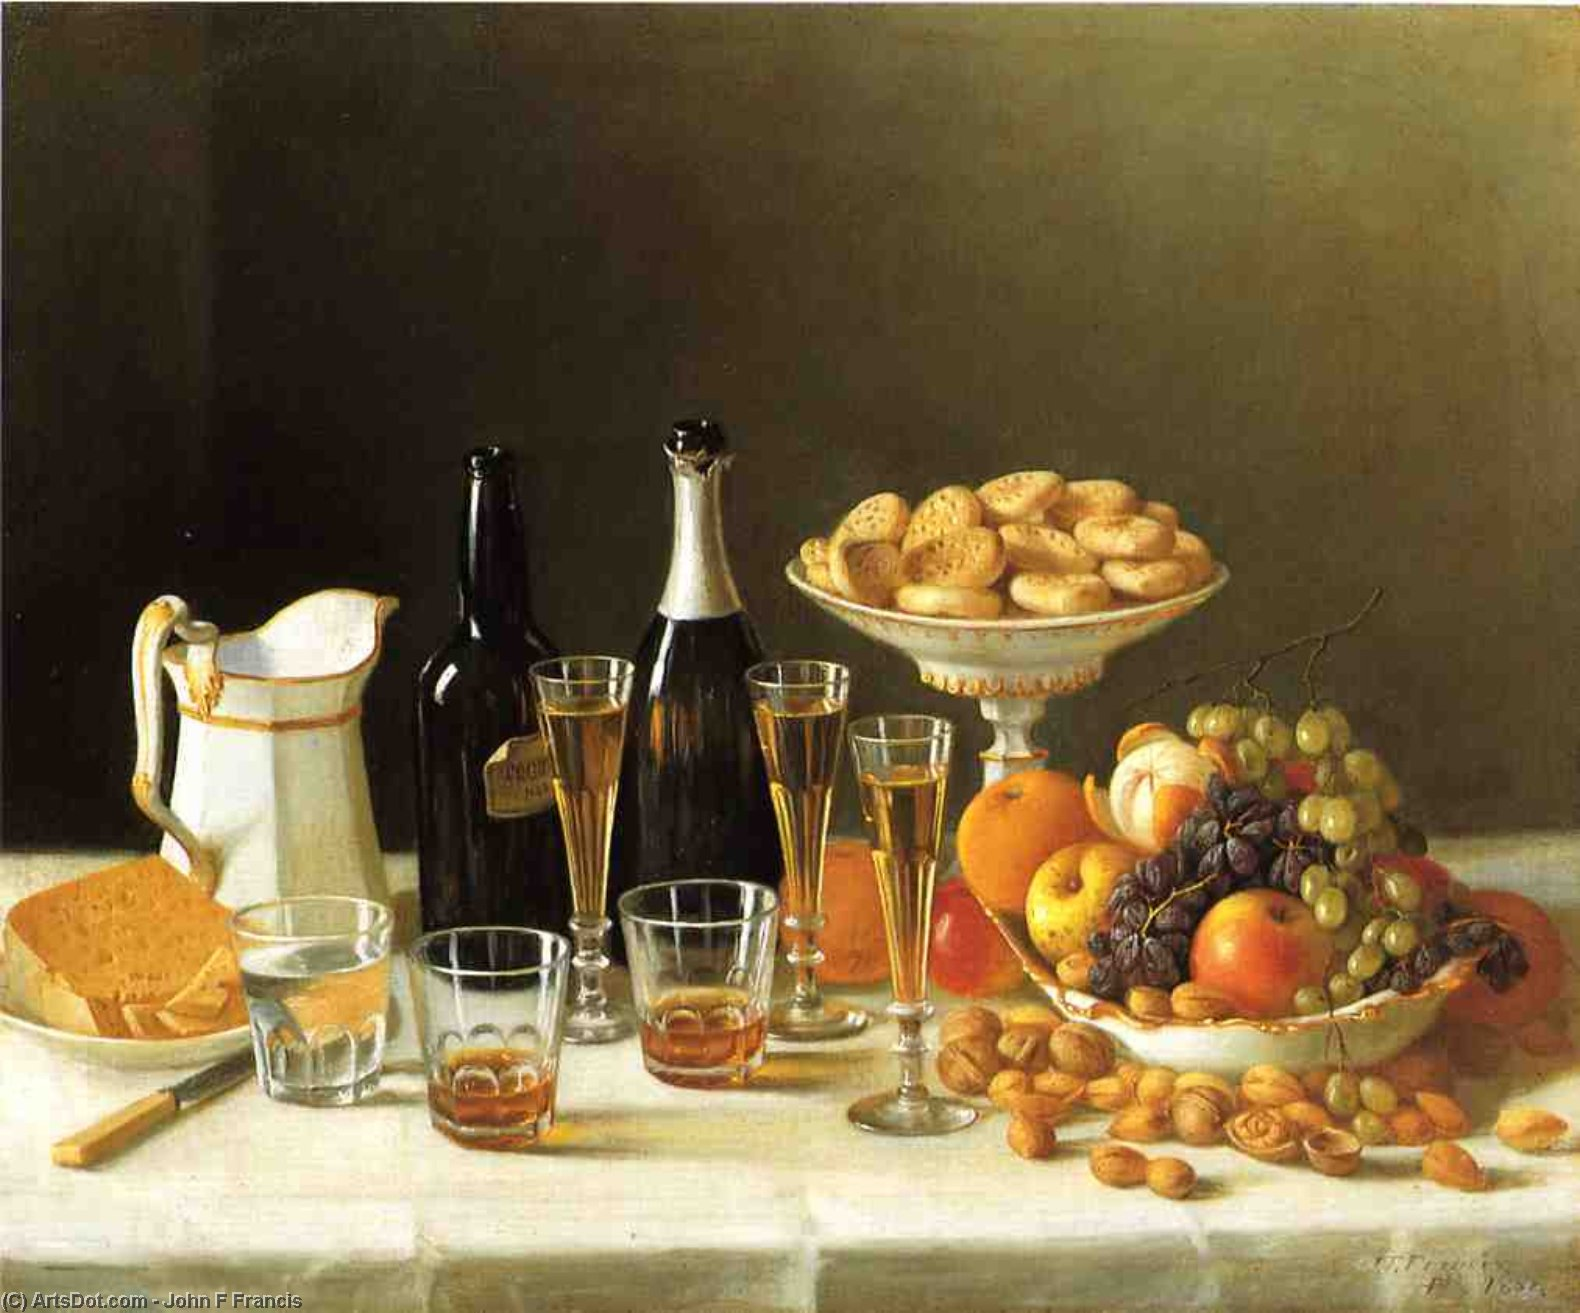 Wine, Cheese and Fruit, Oil On Canvas by John F Francis (1905-1990, United States)